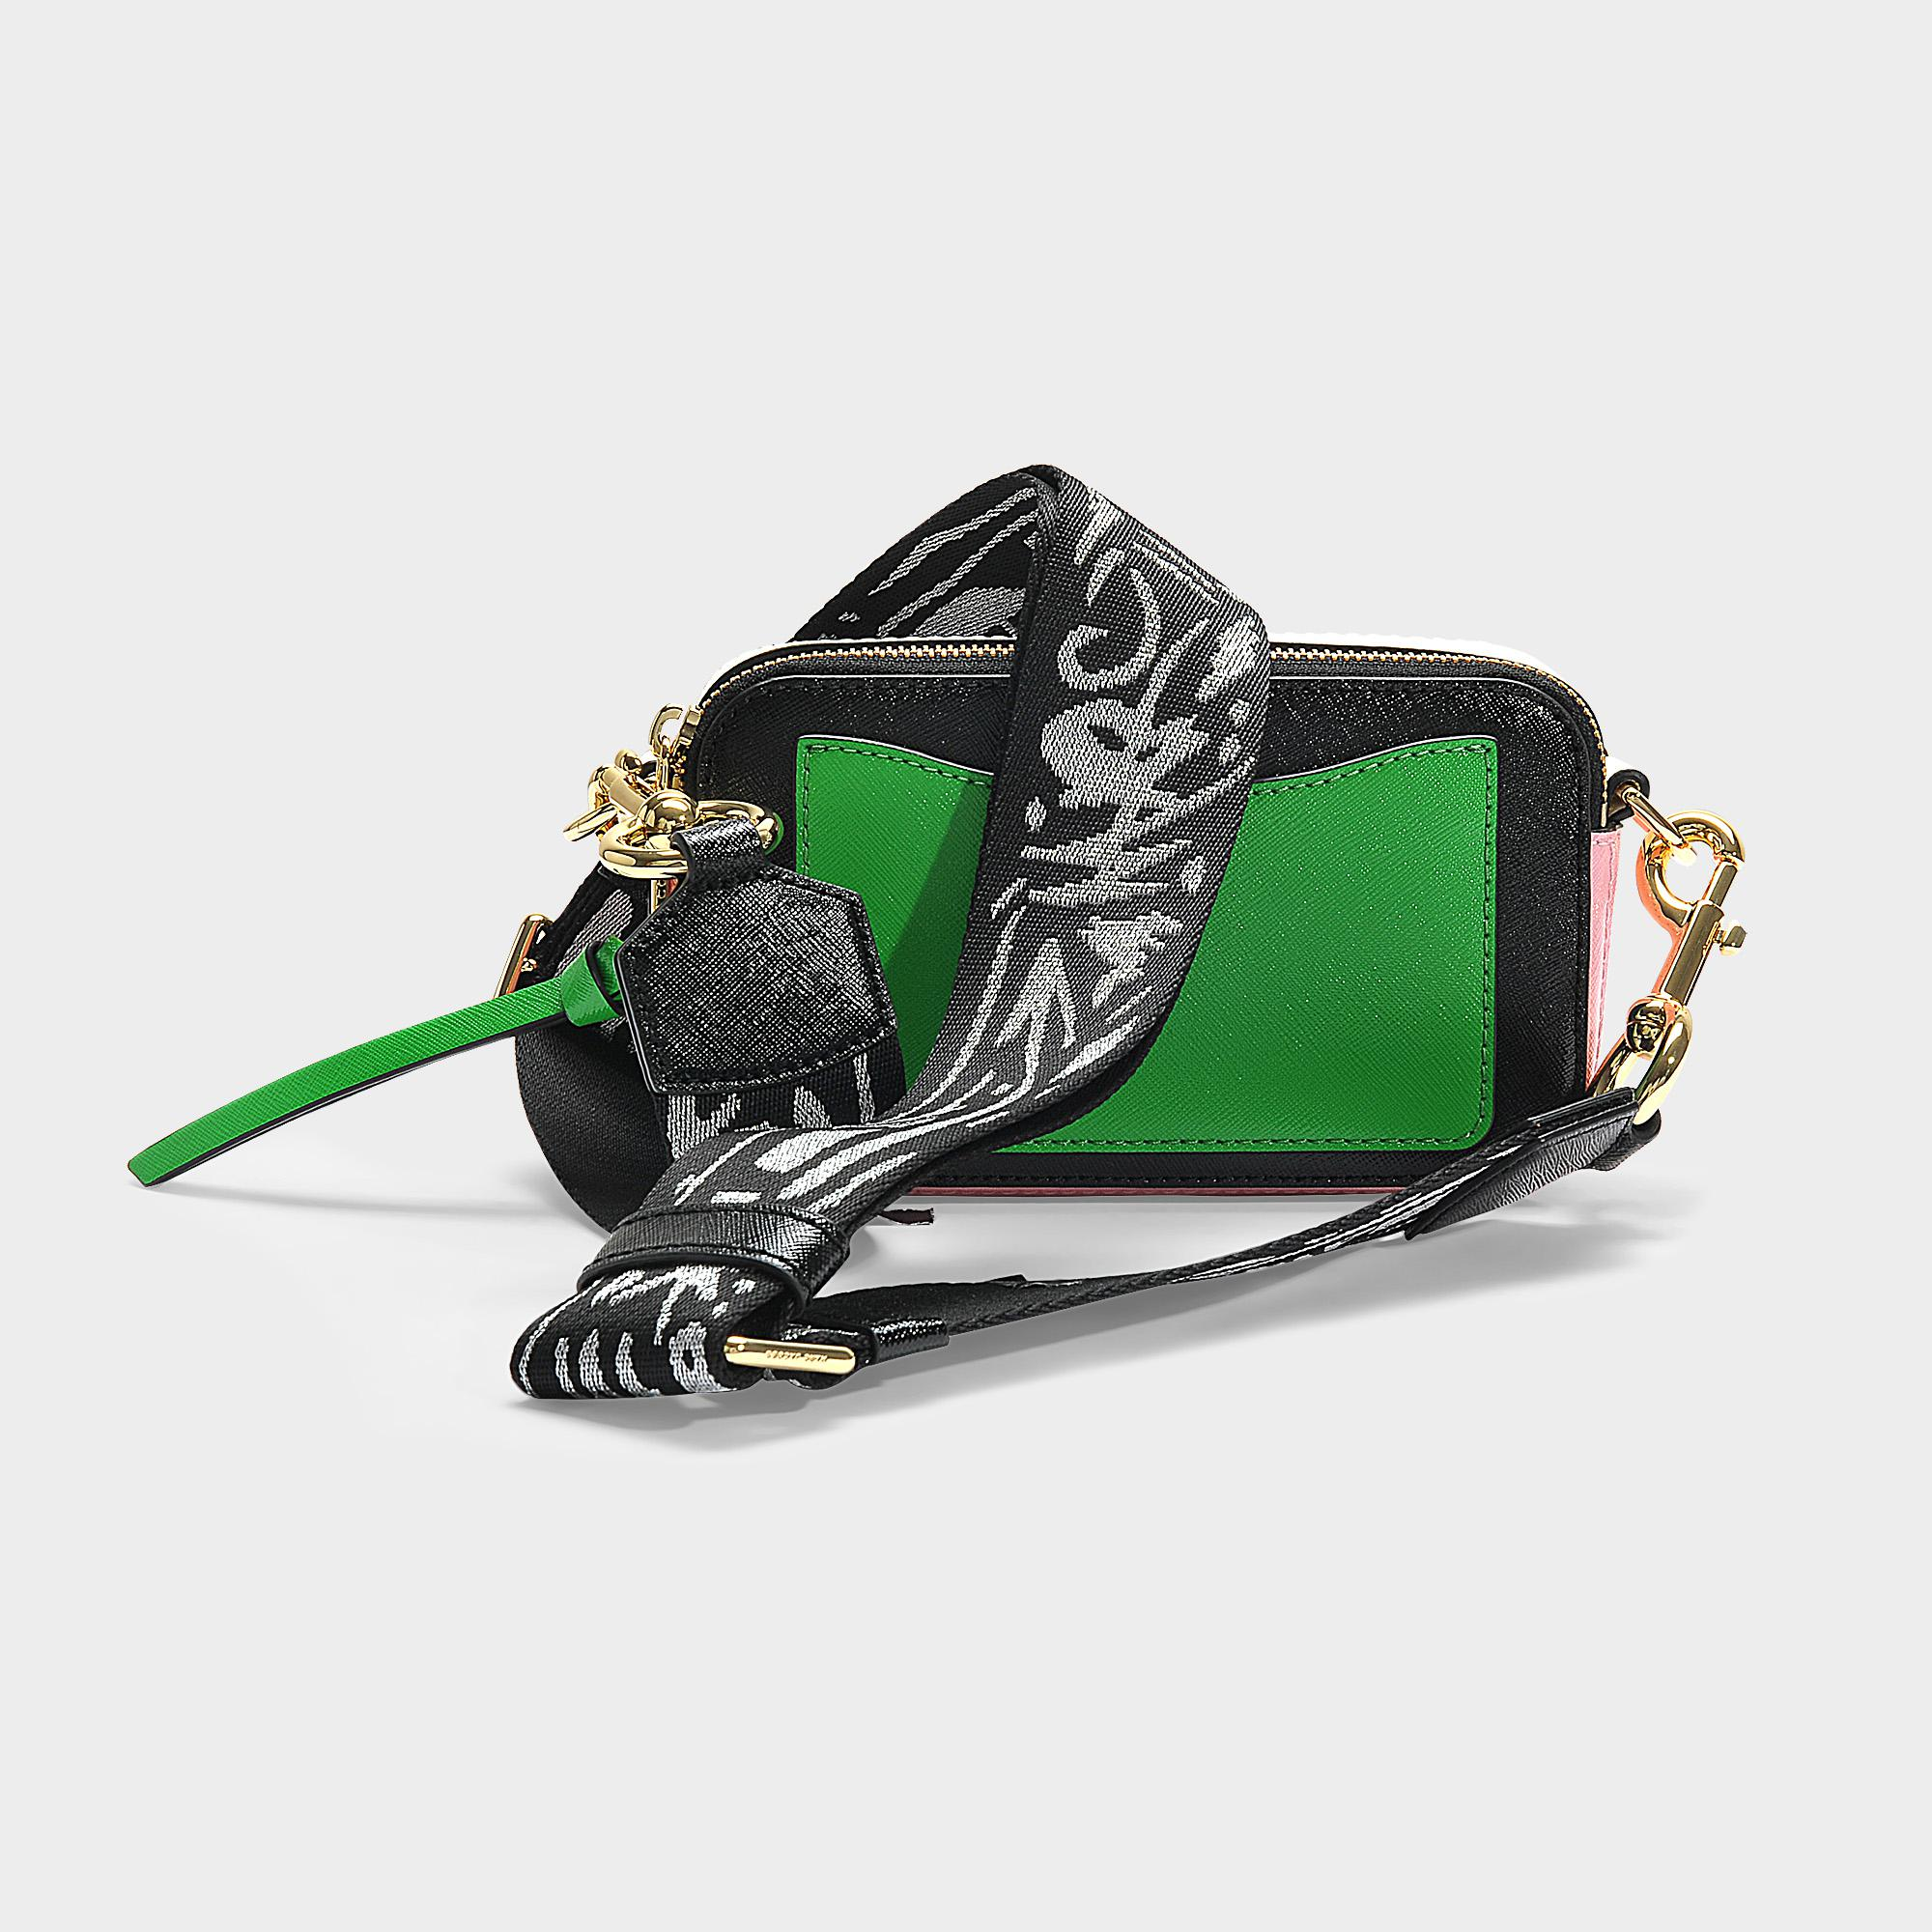 Marc Jacobs Snapshot Crossbody Bag In Black And Pale Pink Polyurethane Coated Calfskin